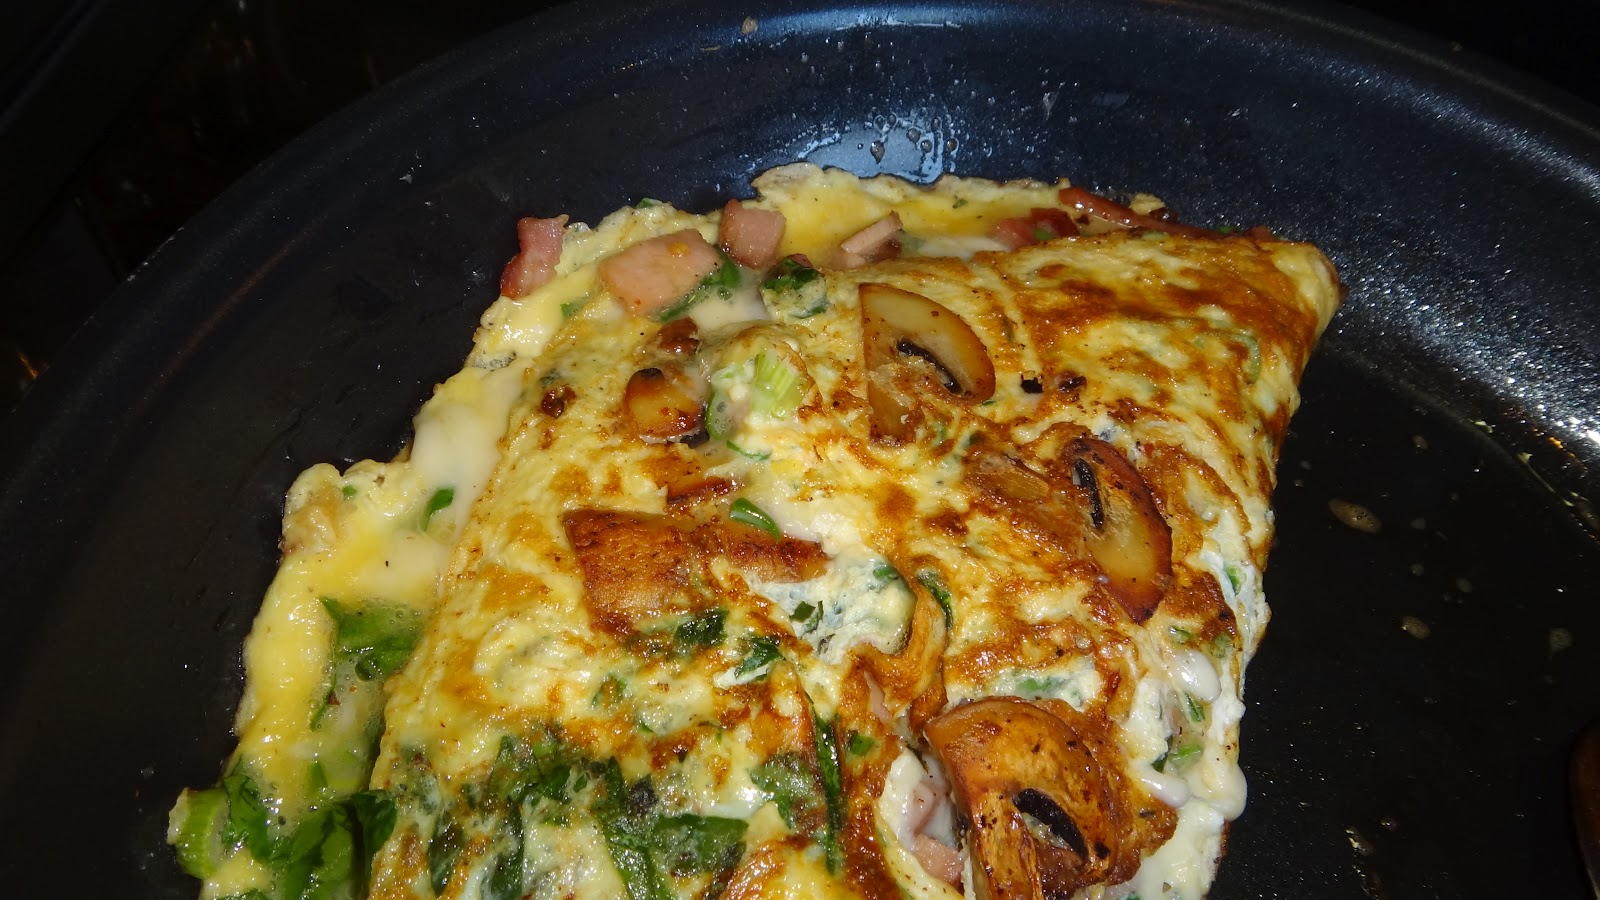 I want to cook that: Toasted Western or Denver Omelet Sandwich